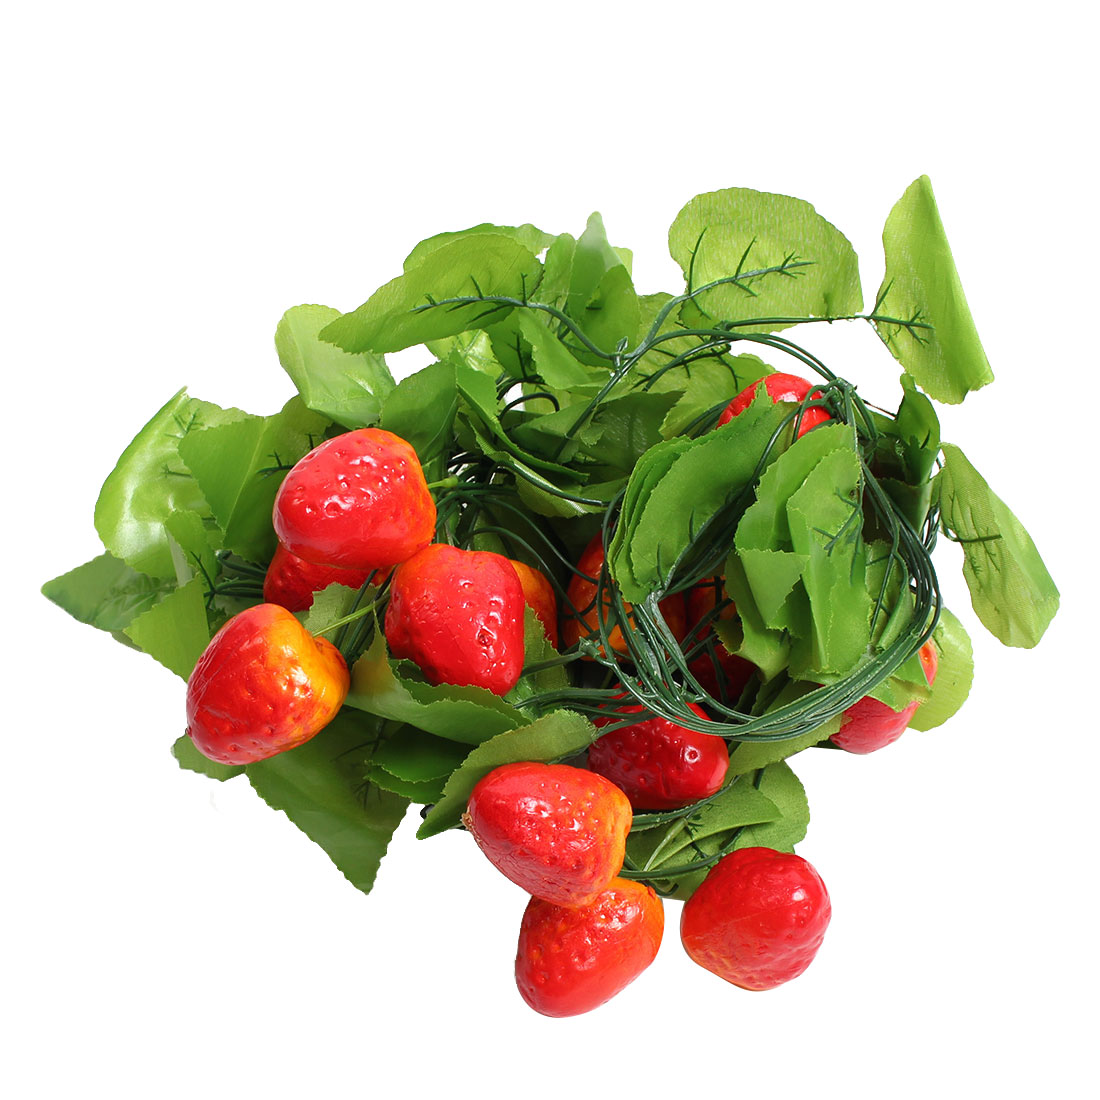 Orchard Vine Artificial Strawberry Leaf Wall Decorative Hanging Green Red 2.6M 5pcs